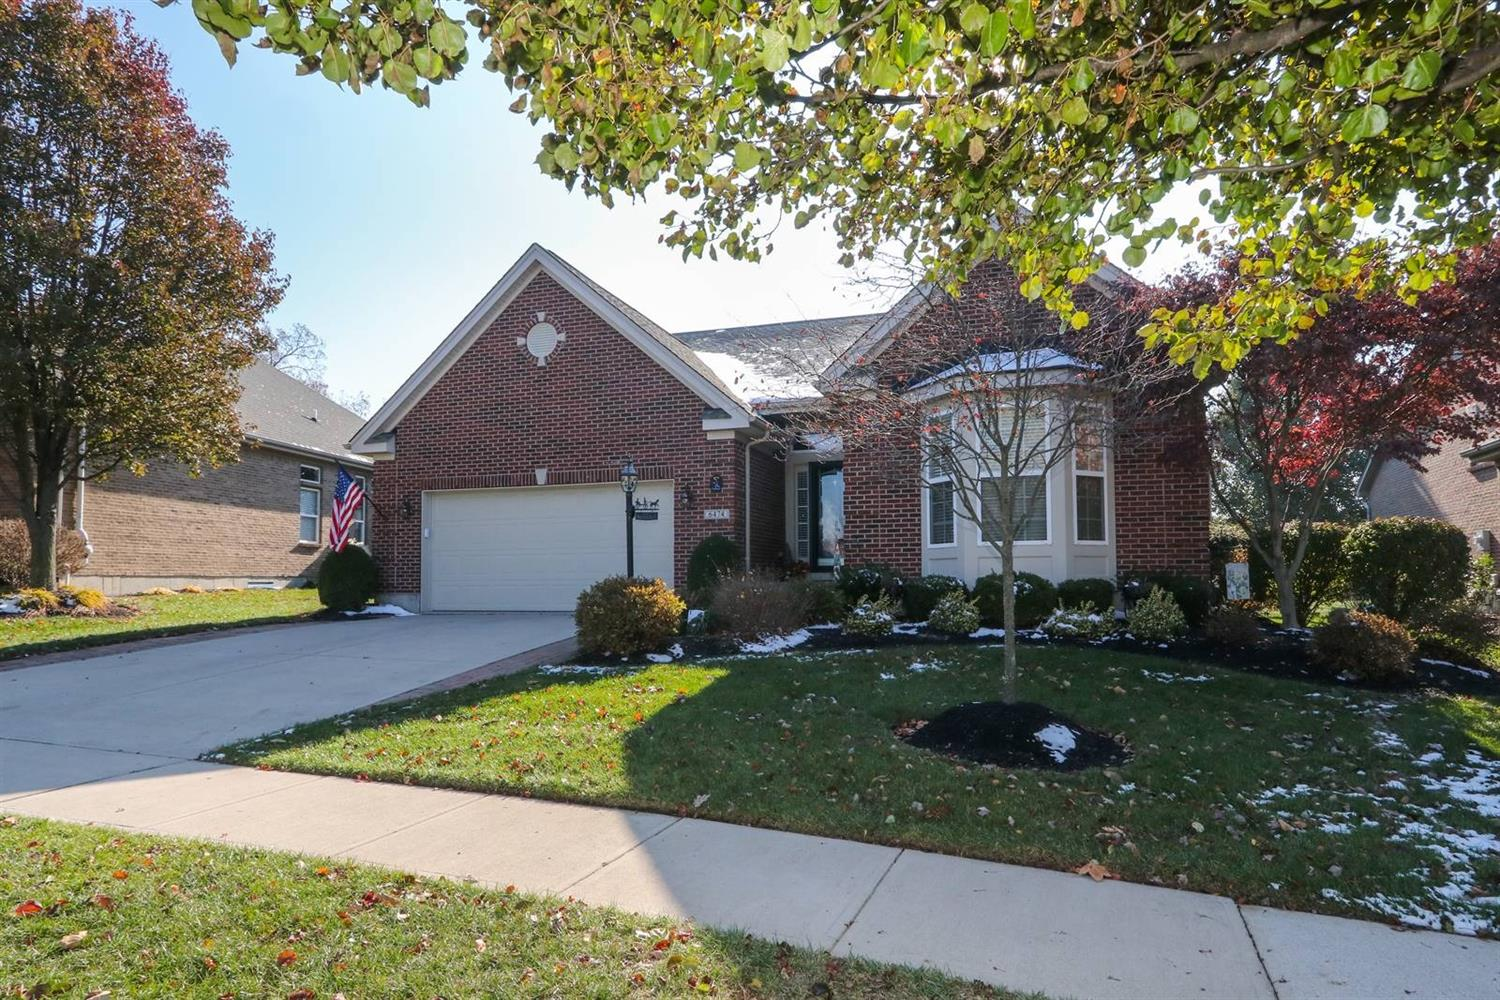 Property for sale at 6474 Creekside Way, Fairfield Twp,  Ohio 45011